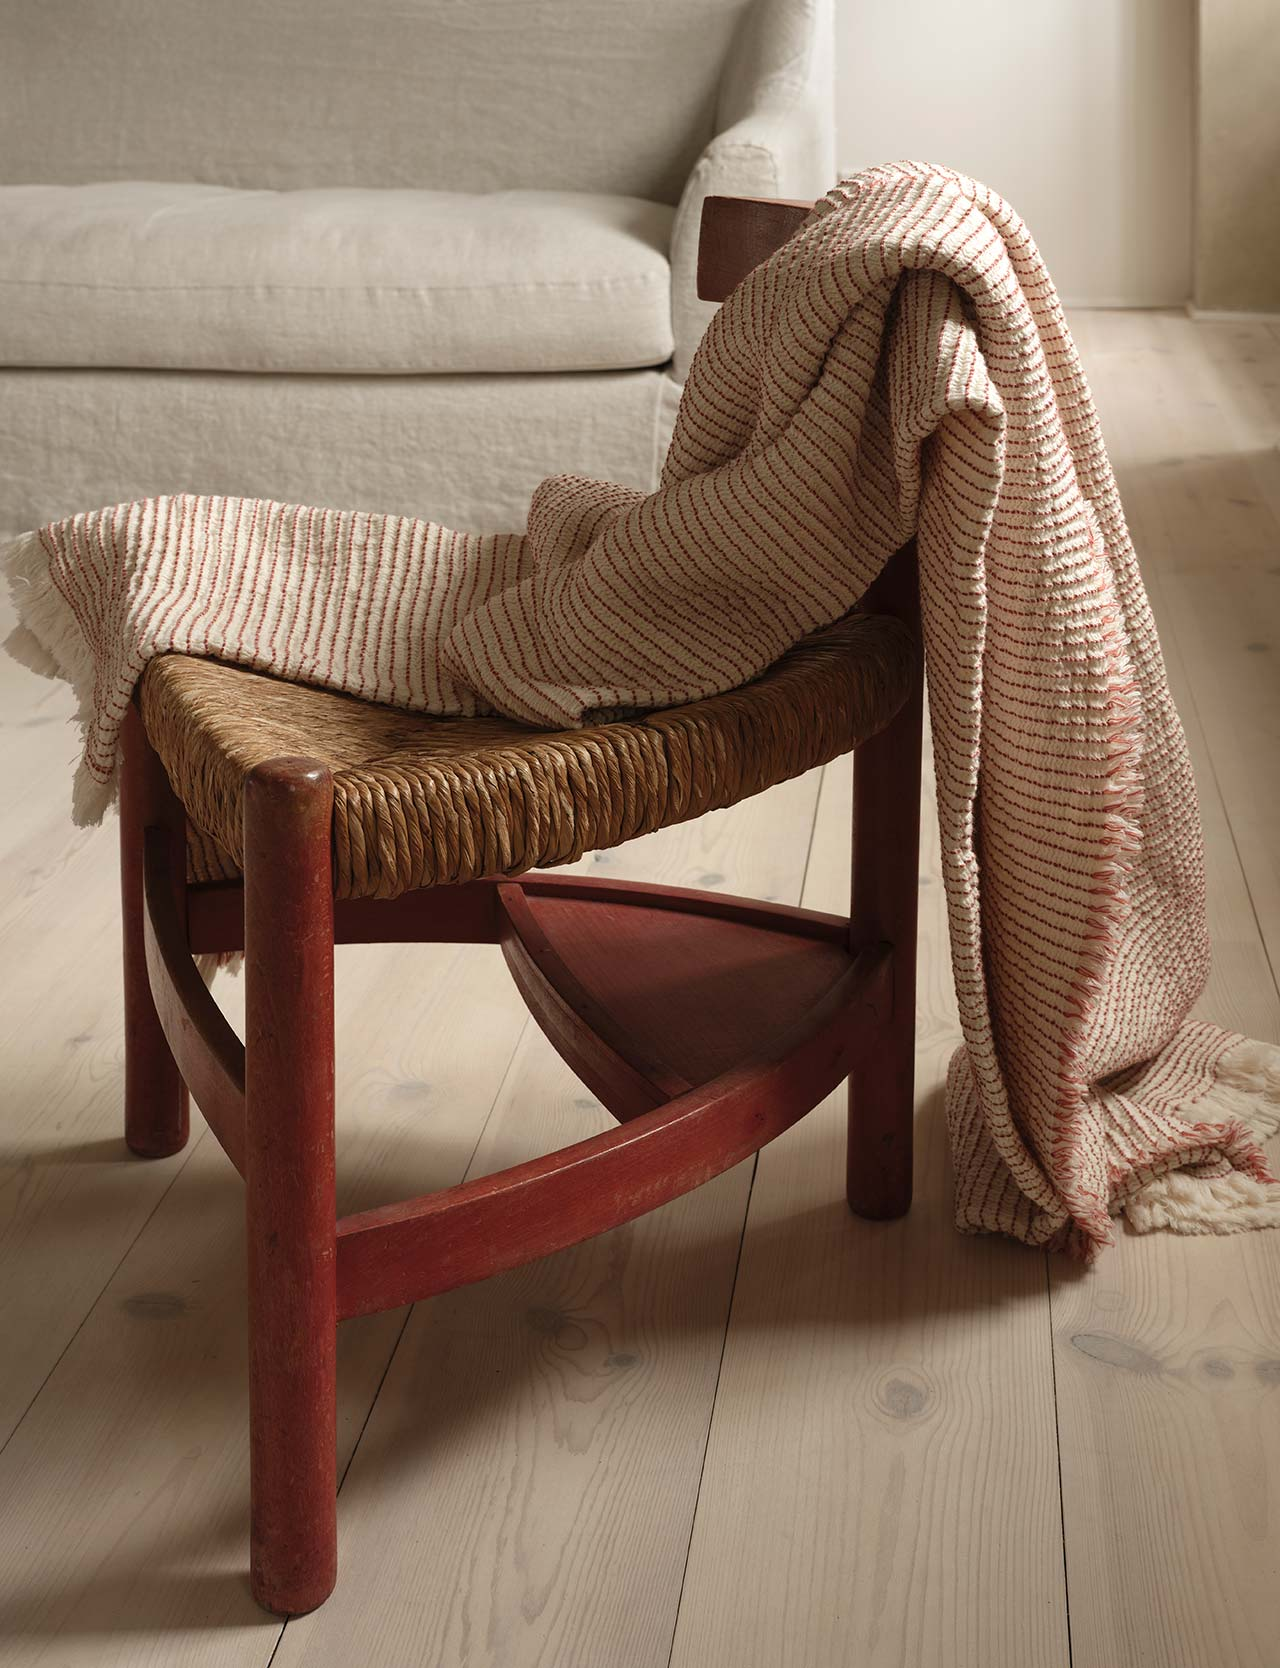 The Nordroom - A Life of Simplicity by Zara Home 9.jpg